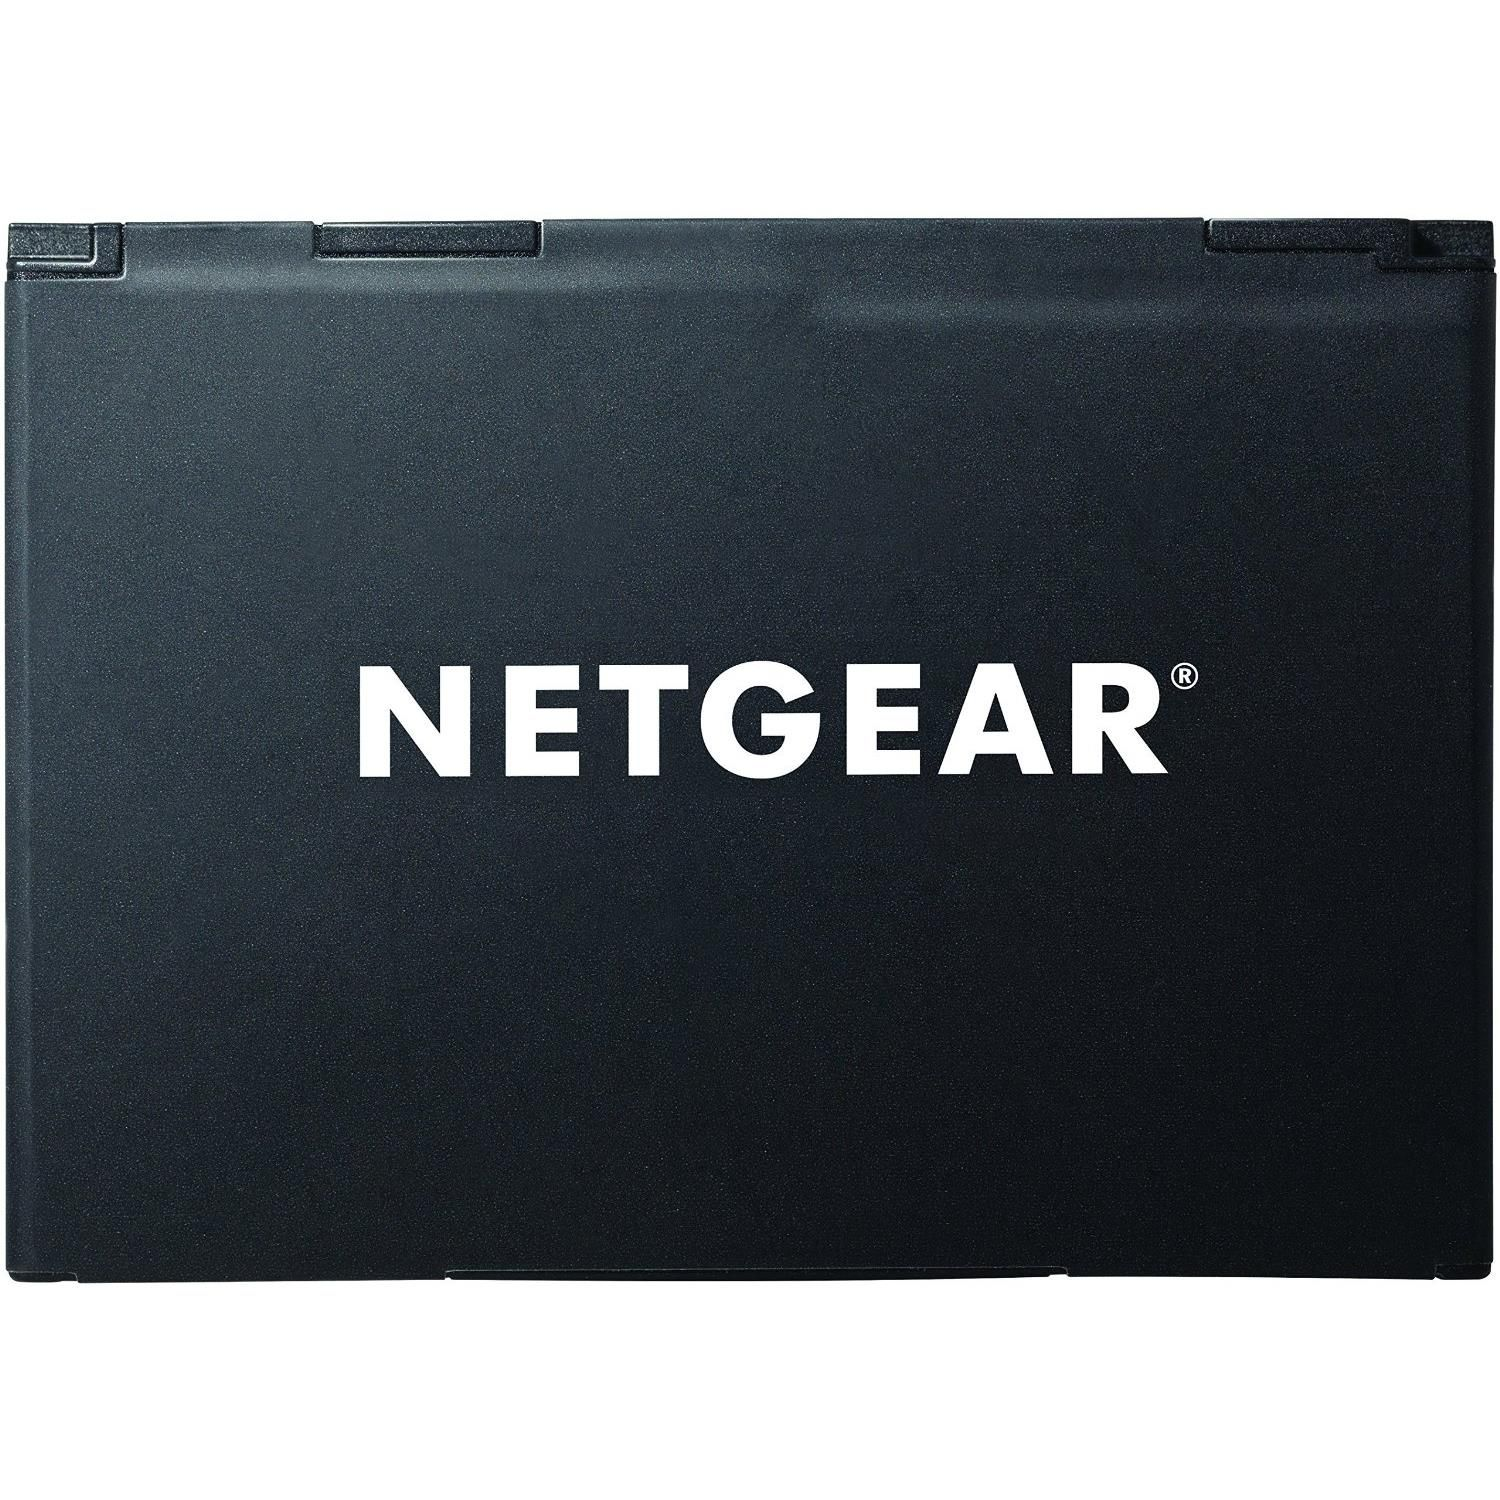 Netgear Aircard Mobile Hotspot Lithium Ion Replacement Battery